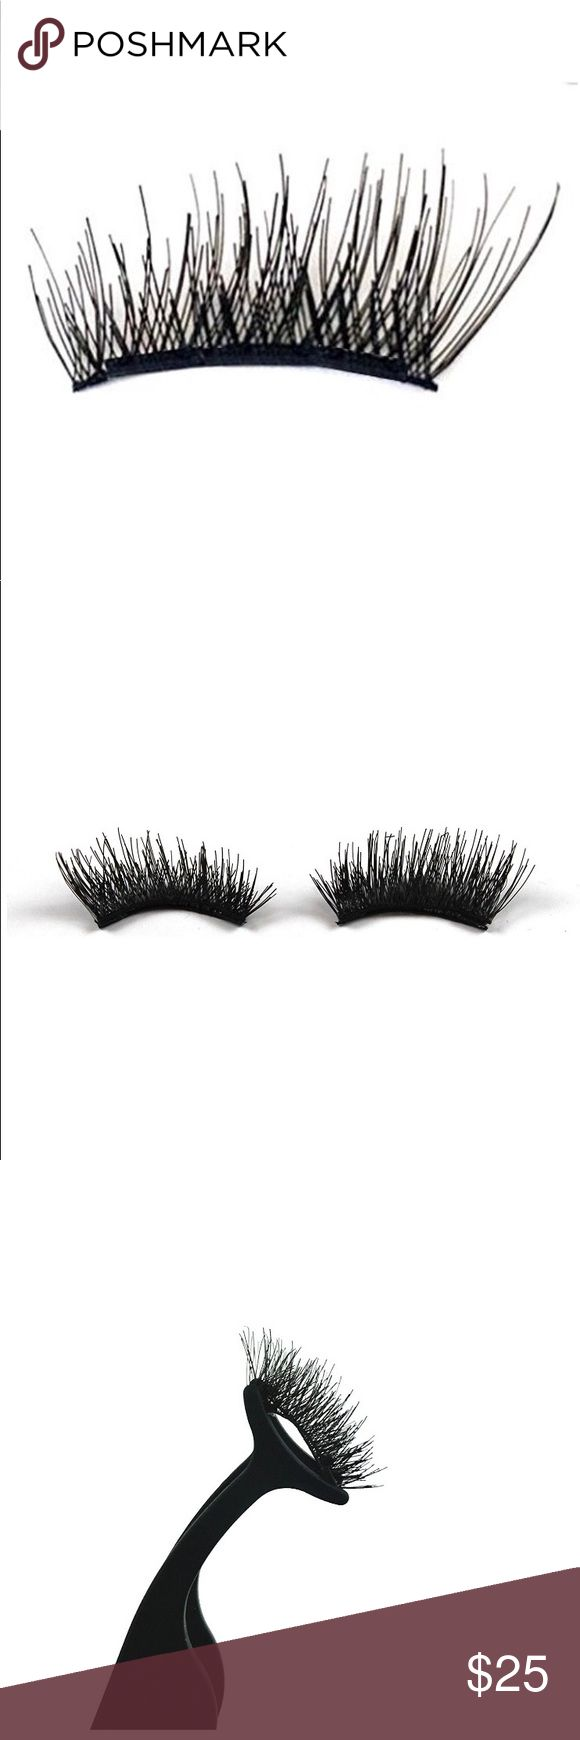 """Double Magnetic Eyelashes 3D Reusable, 4 Pieces High-quality, magnetic eyelashes with double magnets on each corner for maximum coverage and grip. Pkg includes: 1 Pair, 4 pcs – 0.75"""" inch long for small/standard-sized eyes. Comes with 2 front pcs, 2 back pcs that stick to each other around your natural lash creating a 3D look for a fuller lash. Easy to use, apply with magnetic tweezers (sold separately) or fingertips – no glue required. Lashes are reusable up to 30 times. Natural length…"""